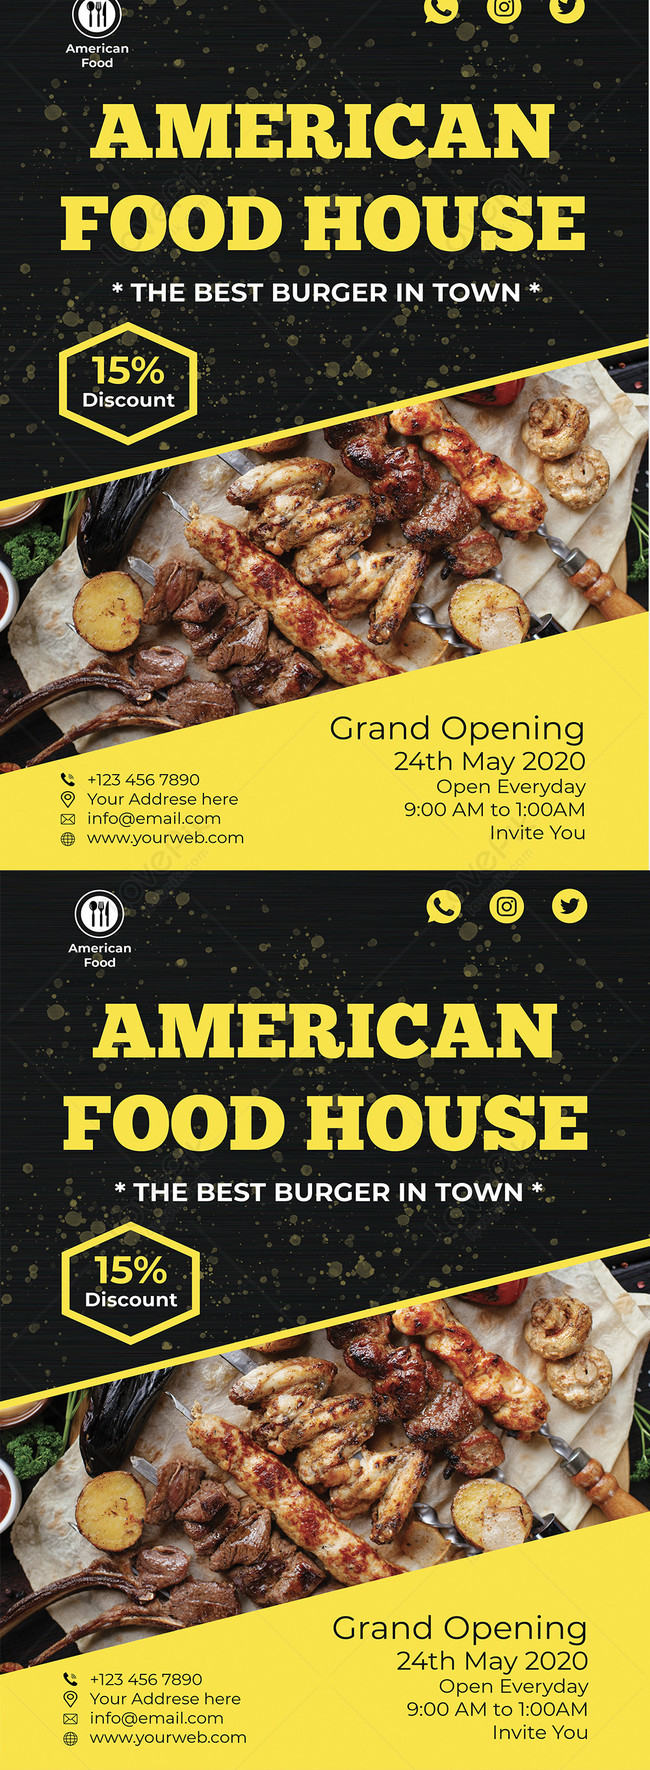 American Food House Restaurant Flyer Template Image Picture Free Download 450009002 Lovepik Com